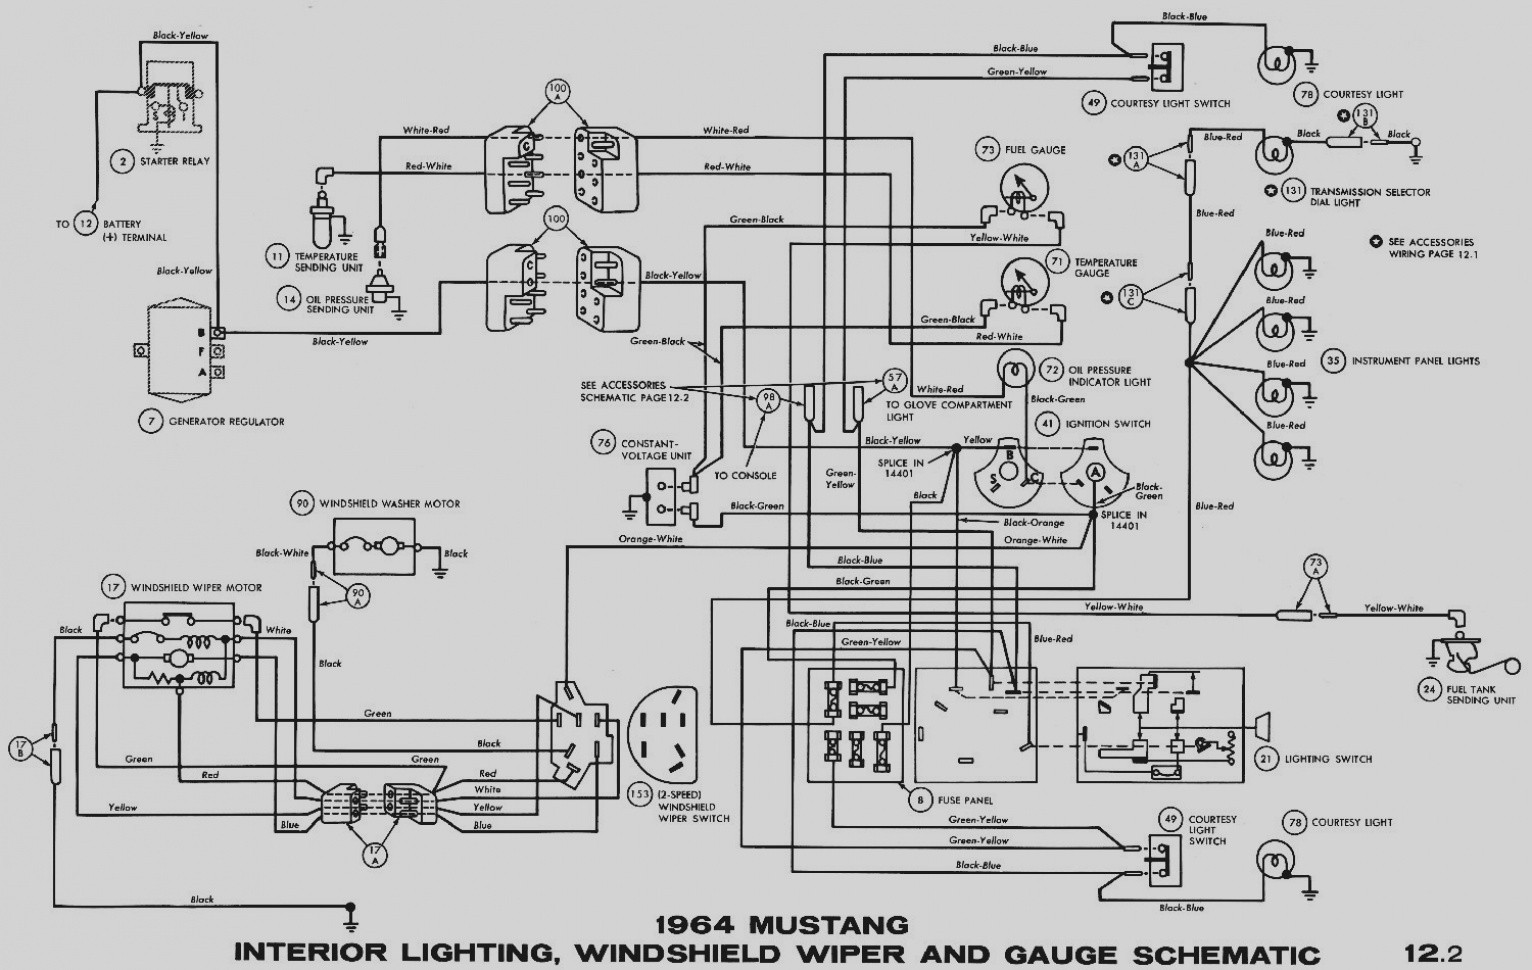 medium resolution of 1964 ford falcon wiper switch wiring diagram wiring diagram dataford falcon fuse panel repair kit ford